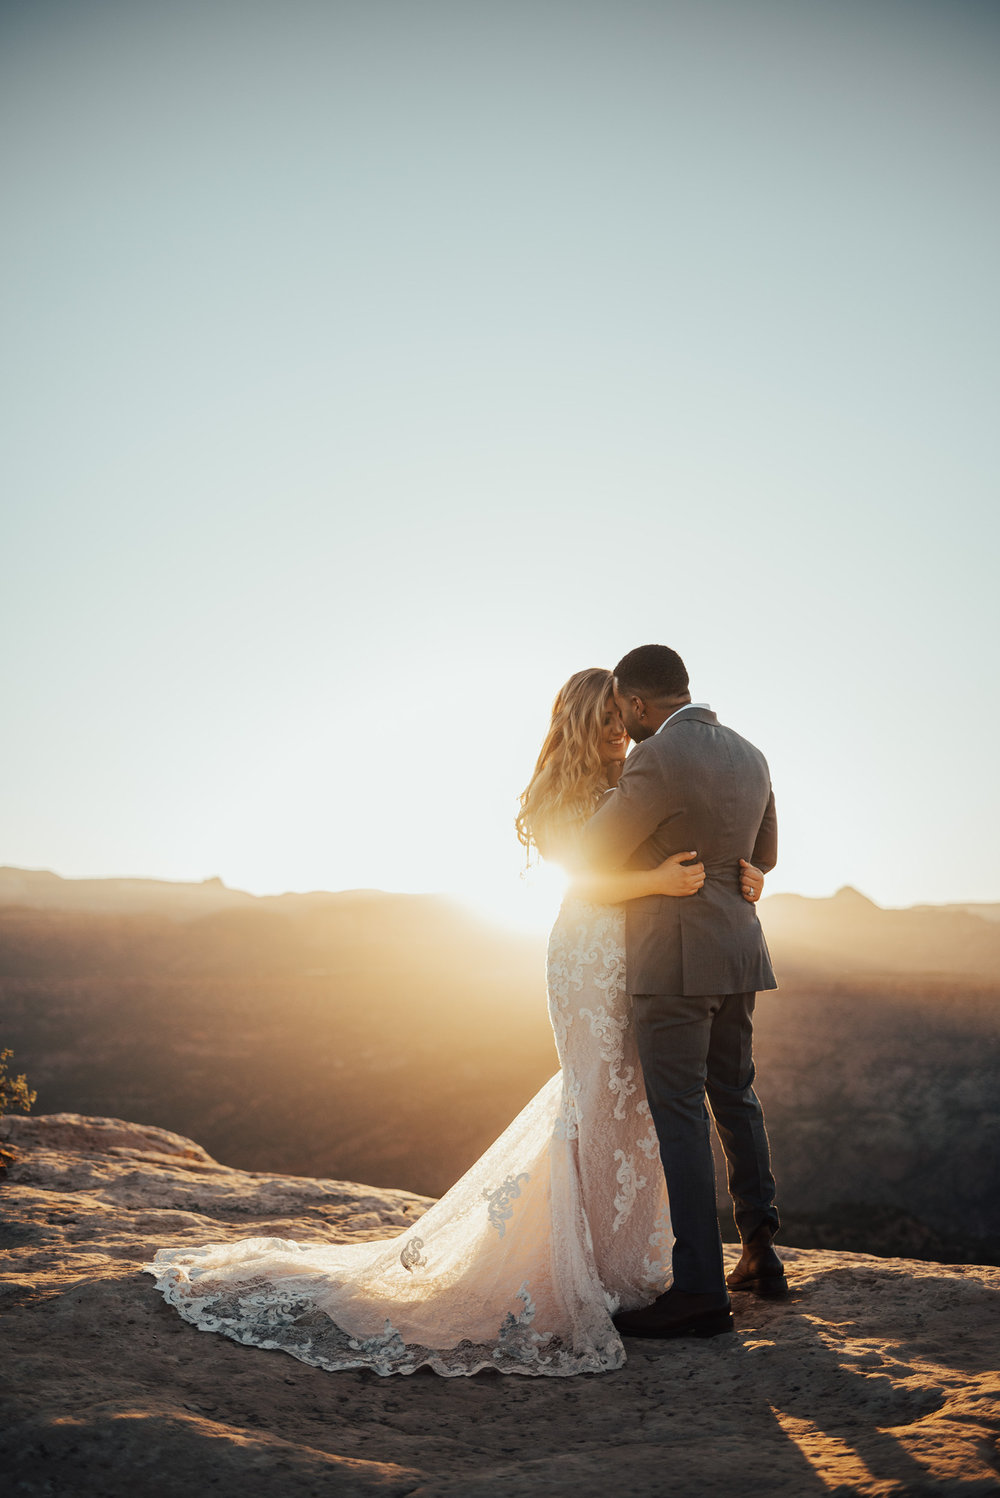 savannah-bridal-shop-ivory-and-beau-maggie-sottero-bride-tuscany-lynette-zion-national-park-wedding-utah-wedding-savannah-wedding-dresses-savannah-wedding-gowns-ashley-smith-photography-vanilla-and-the-bean-15.JPG